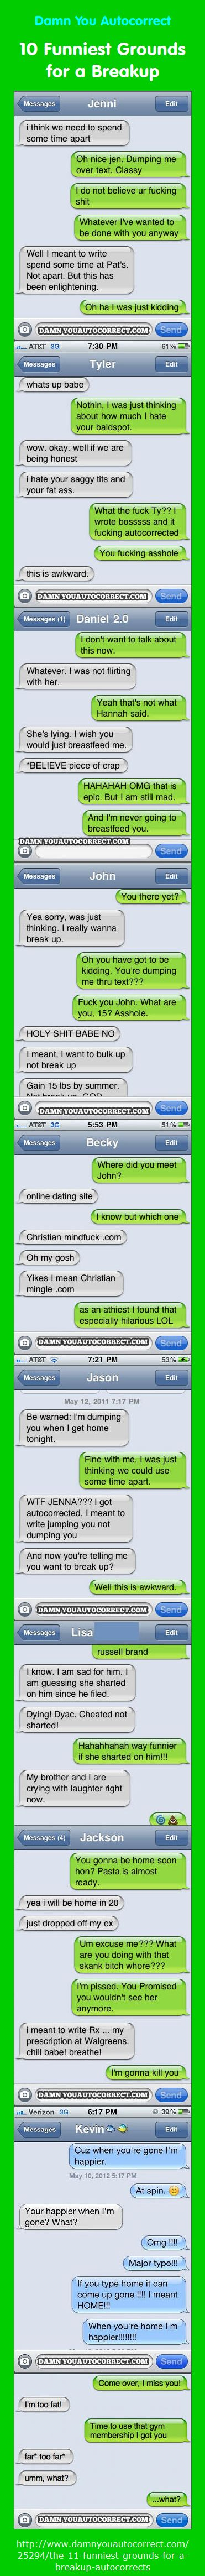 Check out the 10 all-time best relationship autocorrect fails as recorded on Damn You Autocorrect. Very funny stuff.